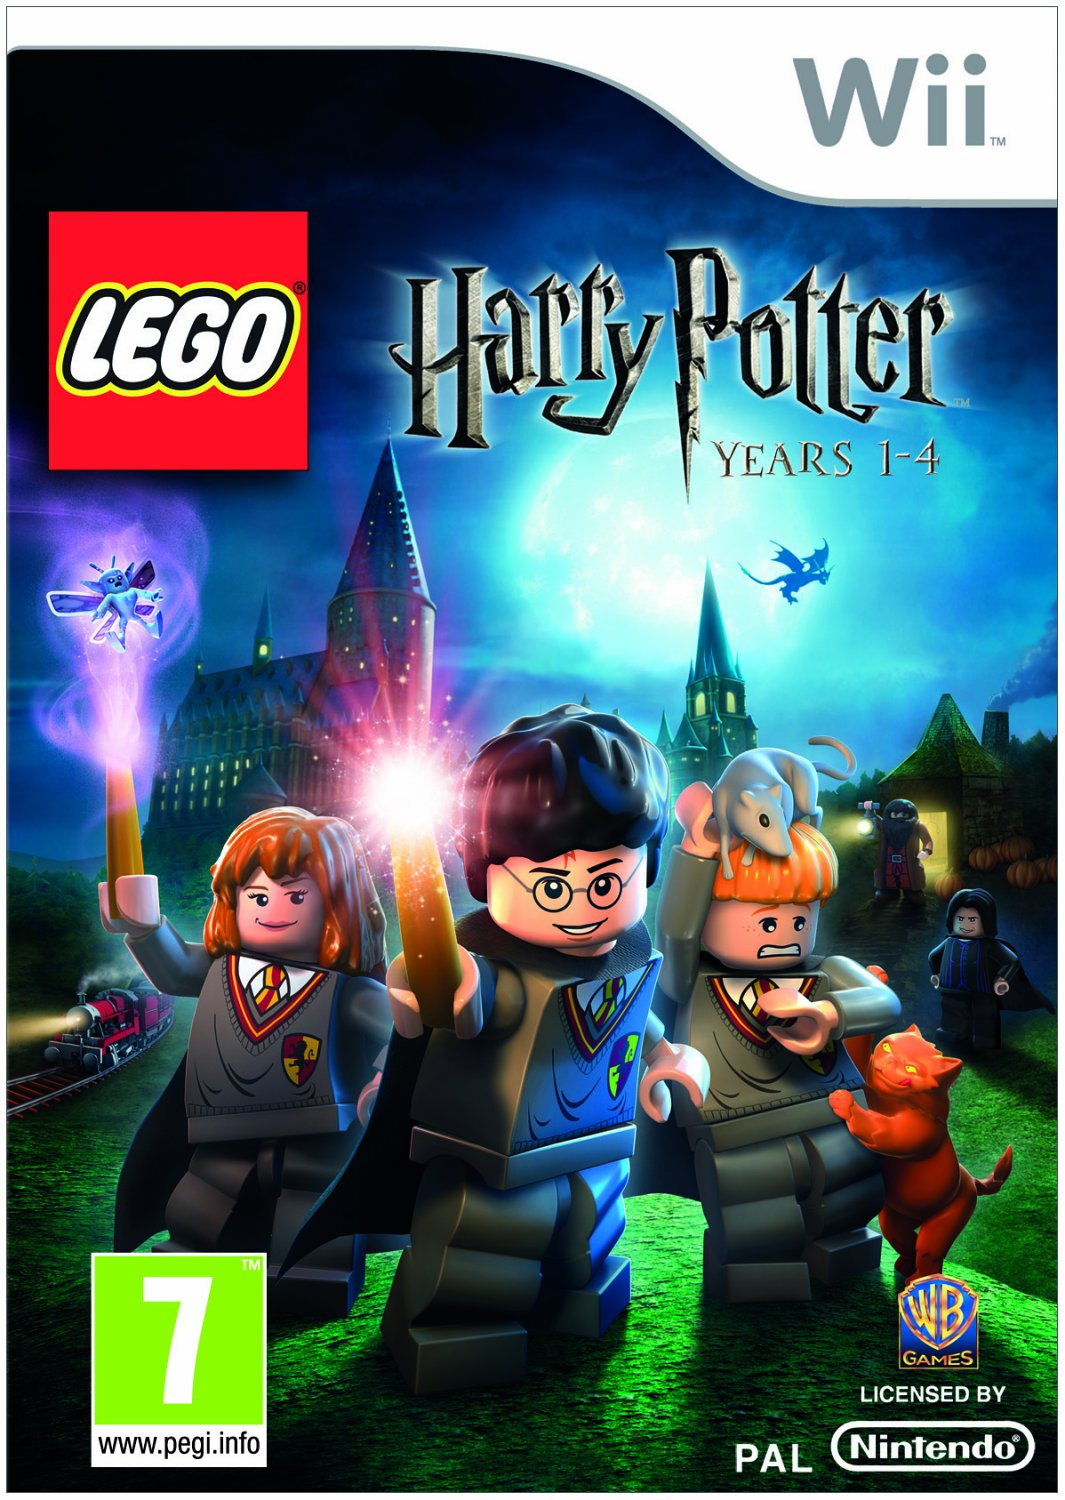 Lego Harry Potter: Years 1-4 (Wii): Amazon.co.uk: PC & Video Games